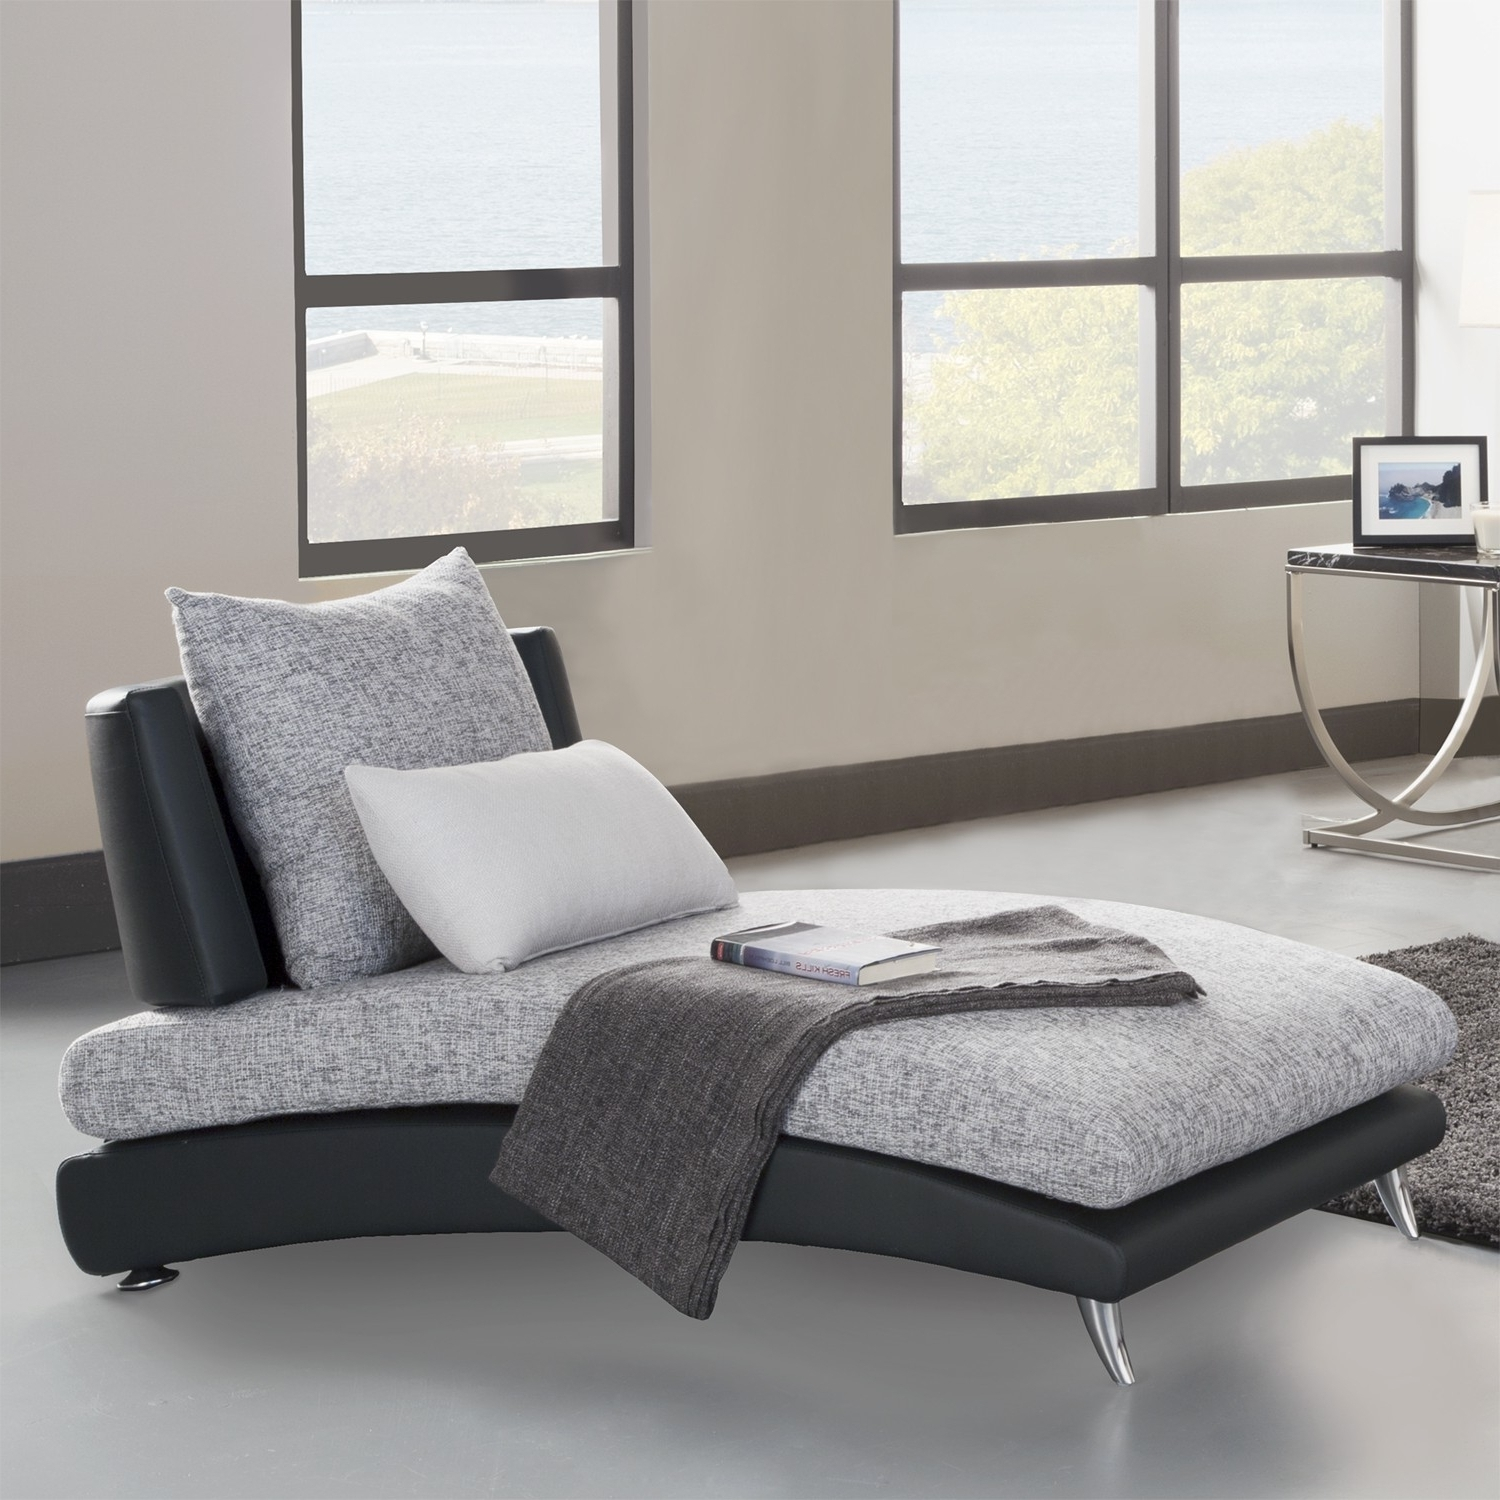 2019 Popular Bedroom Chaise Lounge Chairs